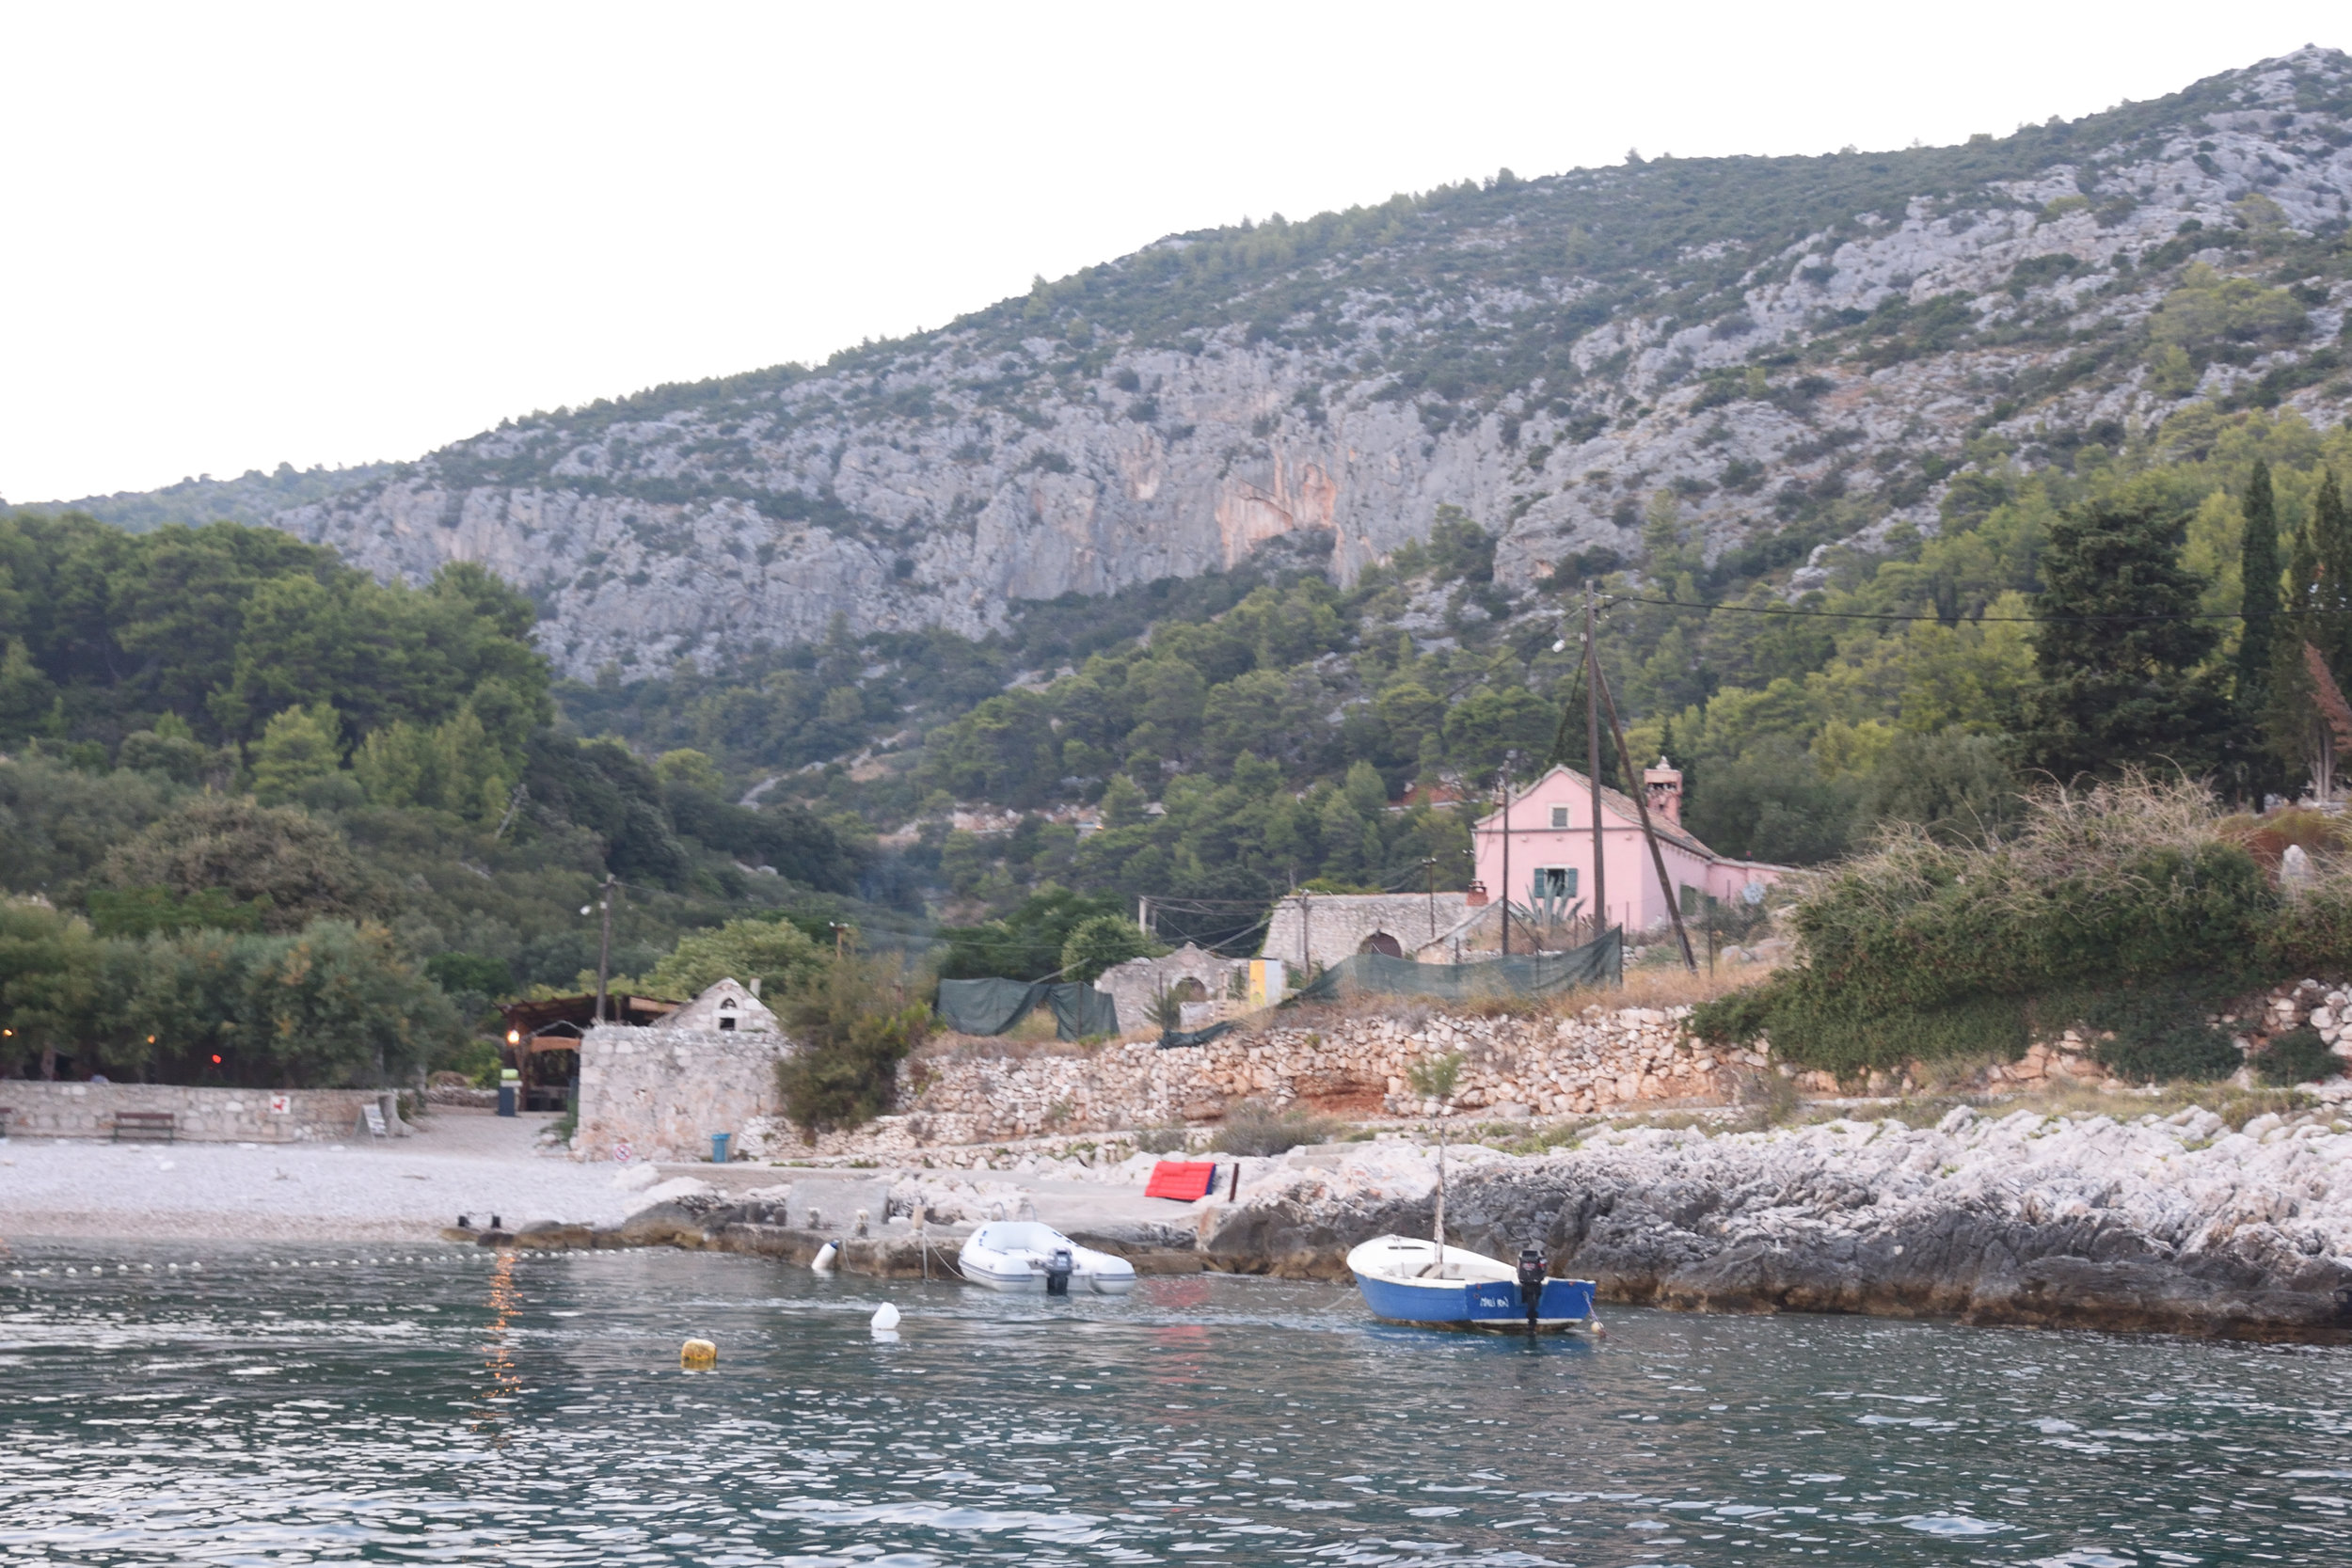 The bay we stayed in for late lunch, Hvar Island, Croatia 2016